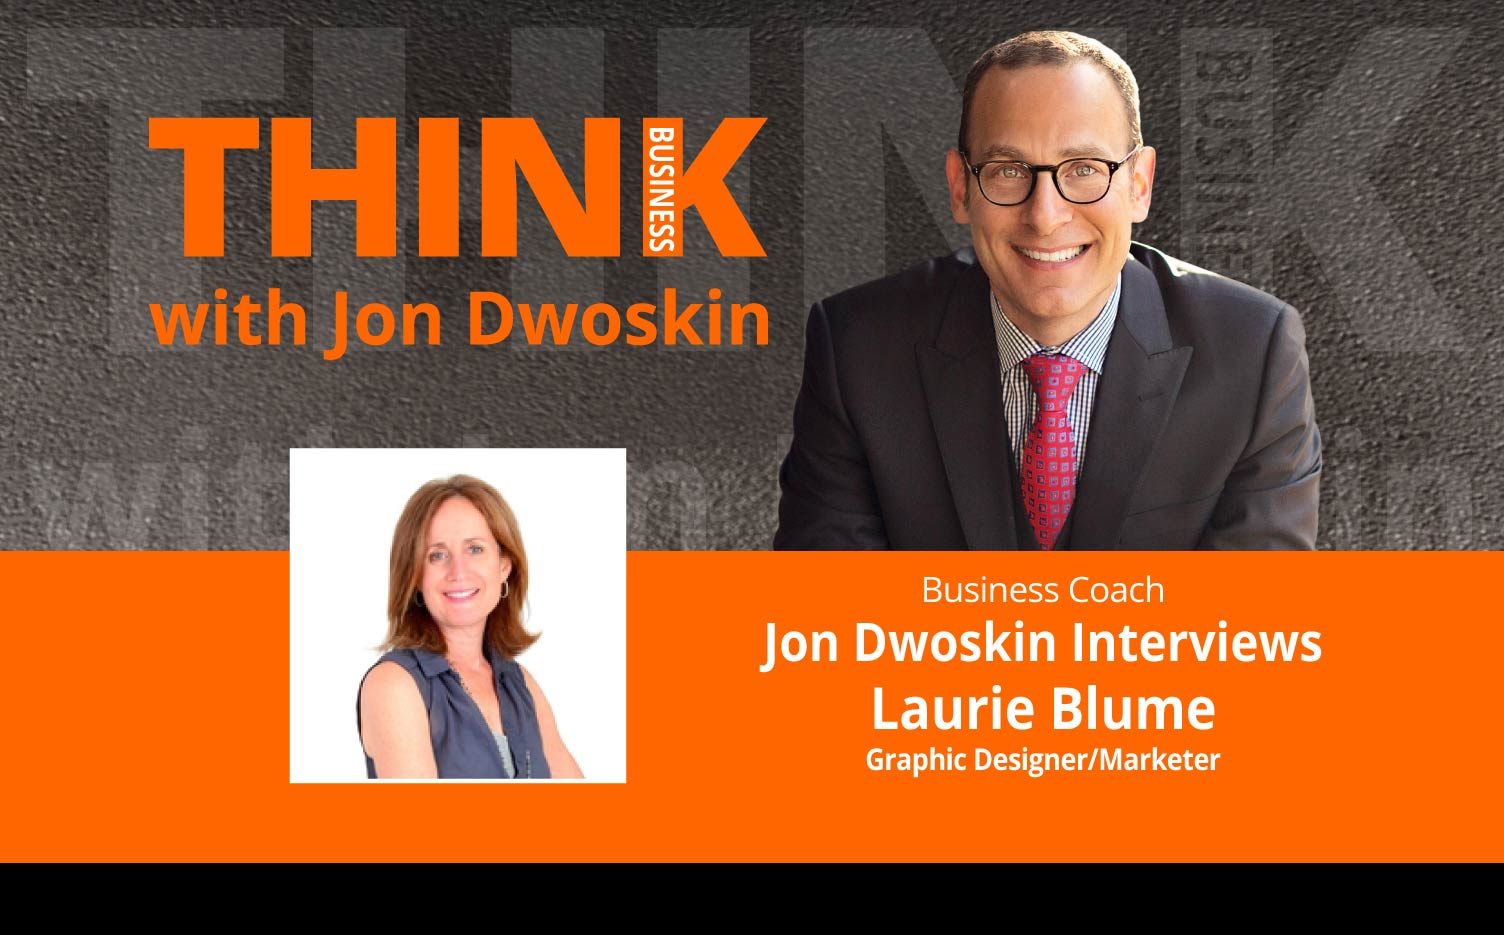 THINK Business Podcast: Jon Dwoskin Interviews Laurie Blume, Graphic Designer/Marketer